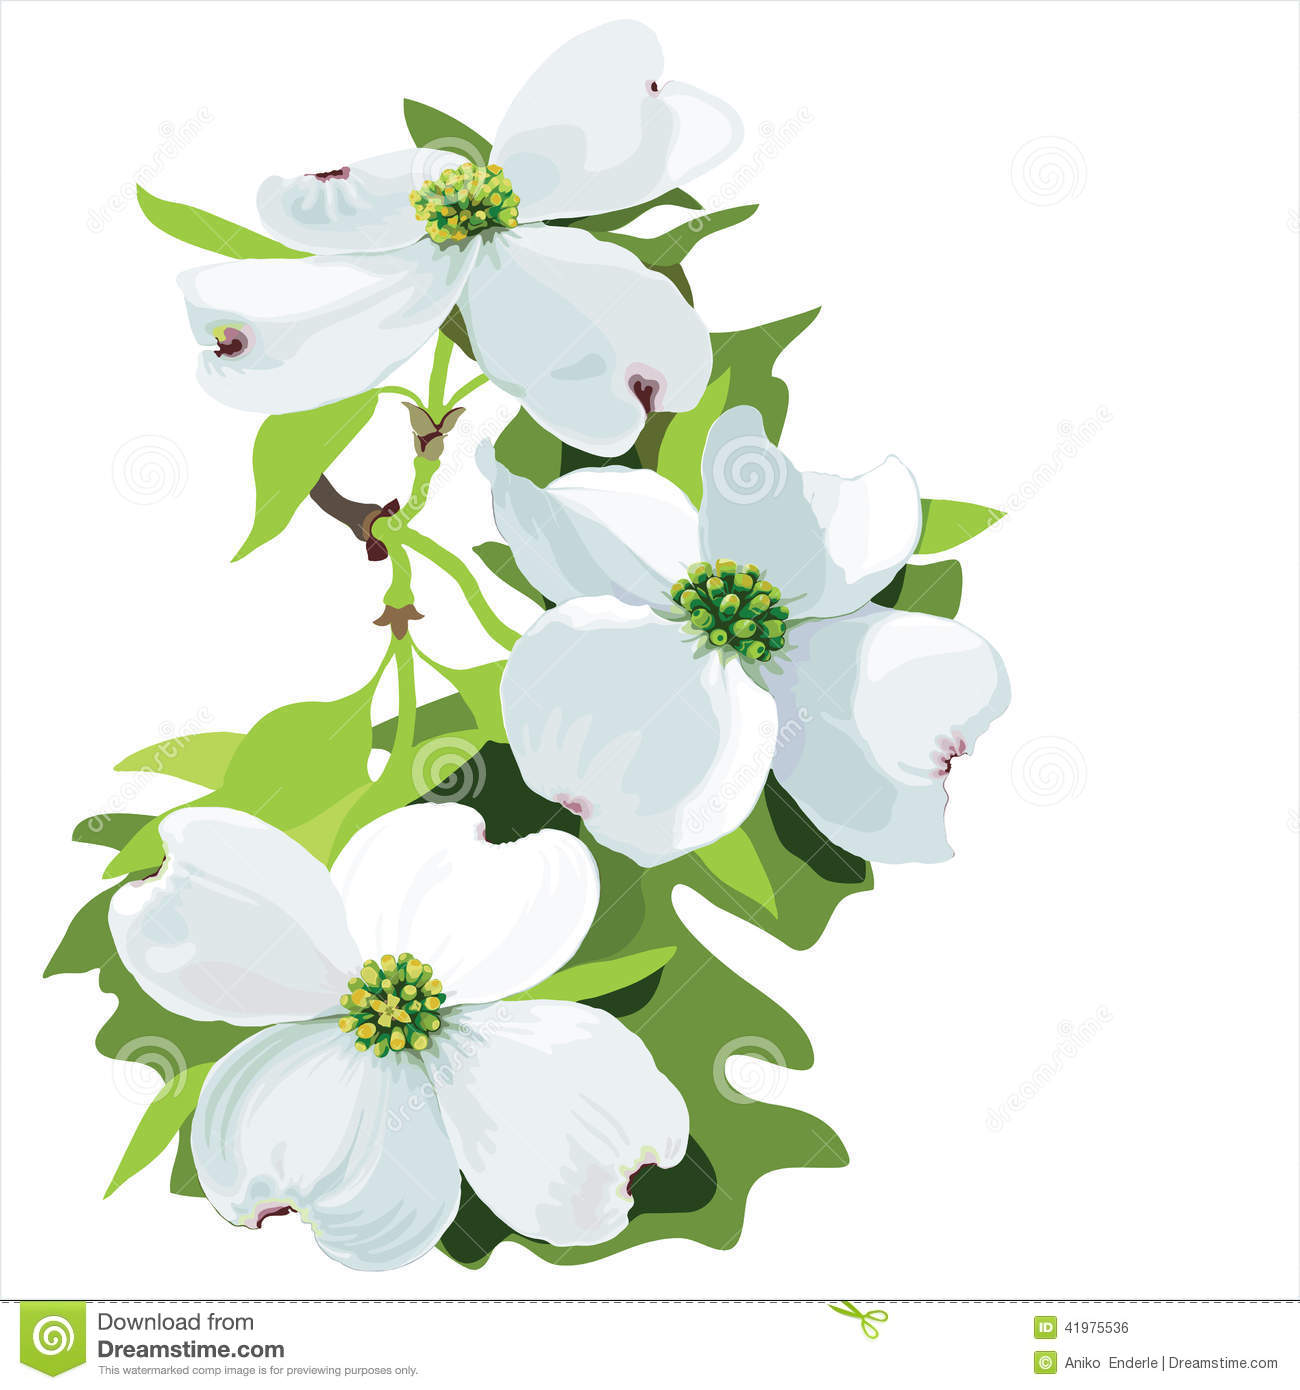 Hand Drawn Vector Illustration Of Dogwood Blossom In Realistic Style